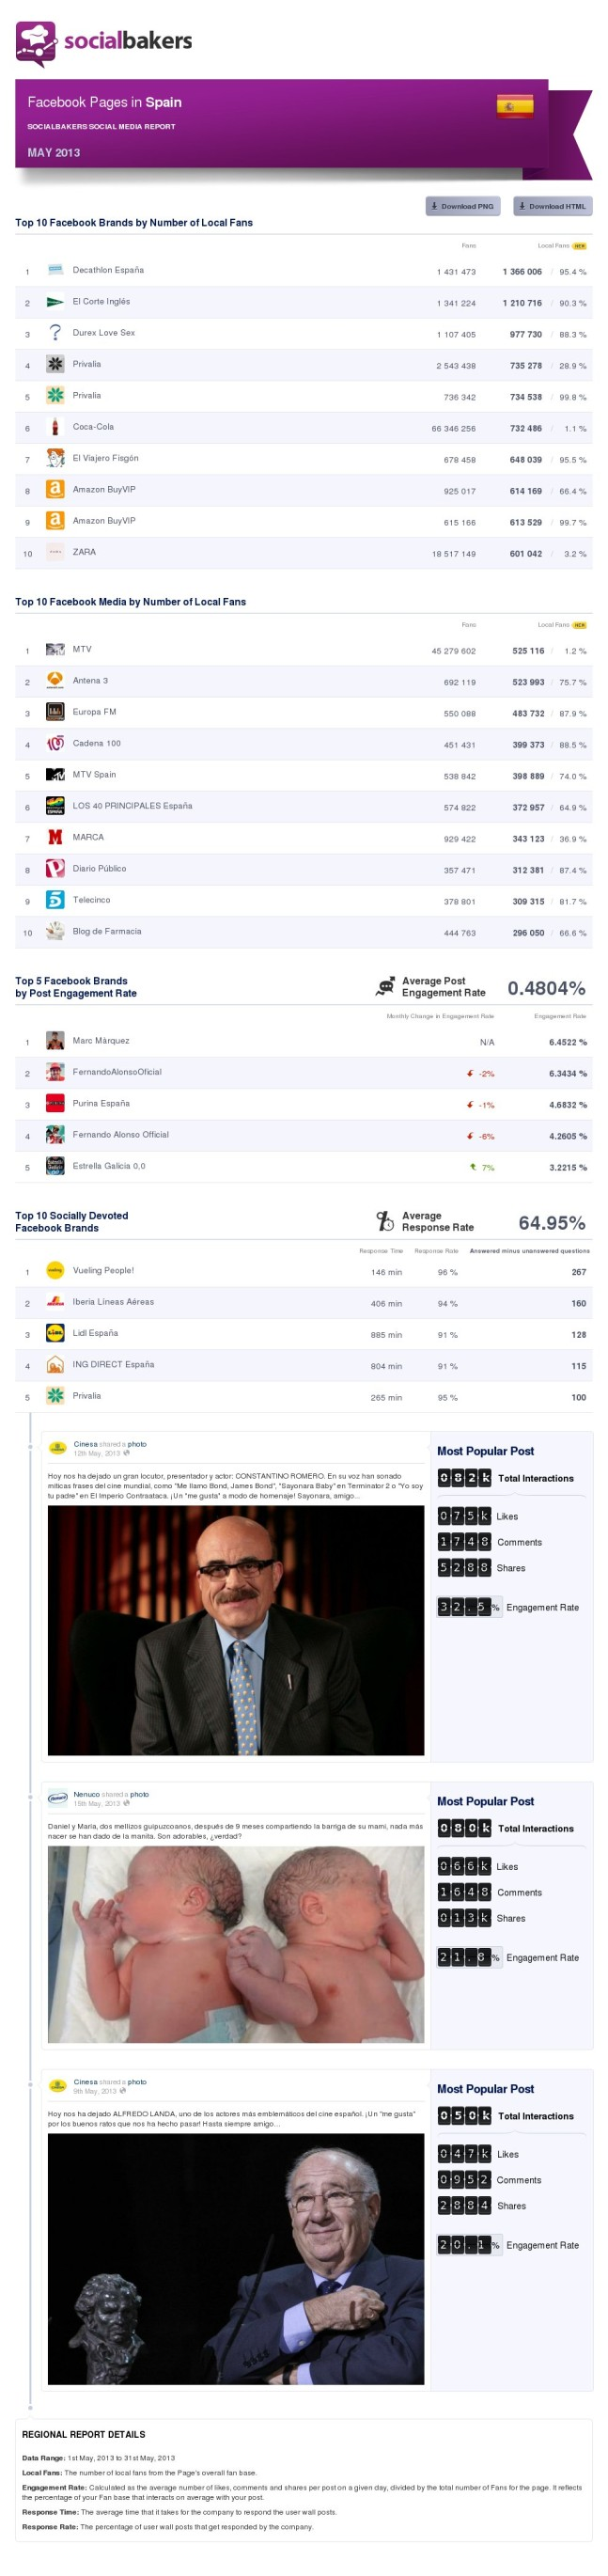 may-2013-social-media-report-facebook-pages-in-spain